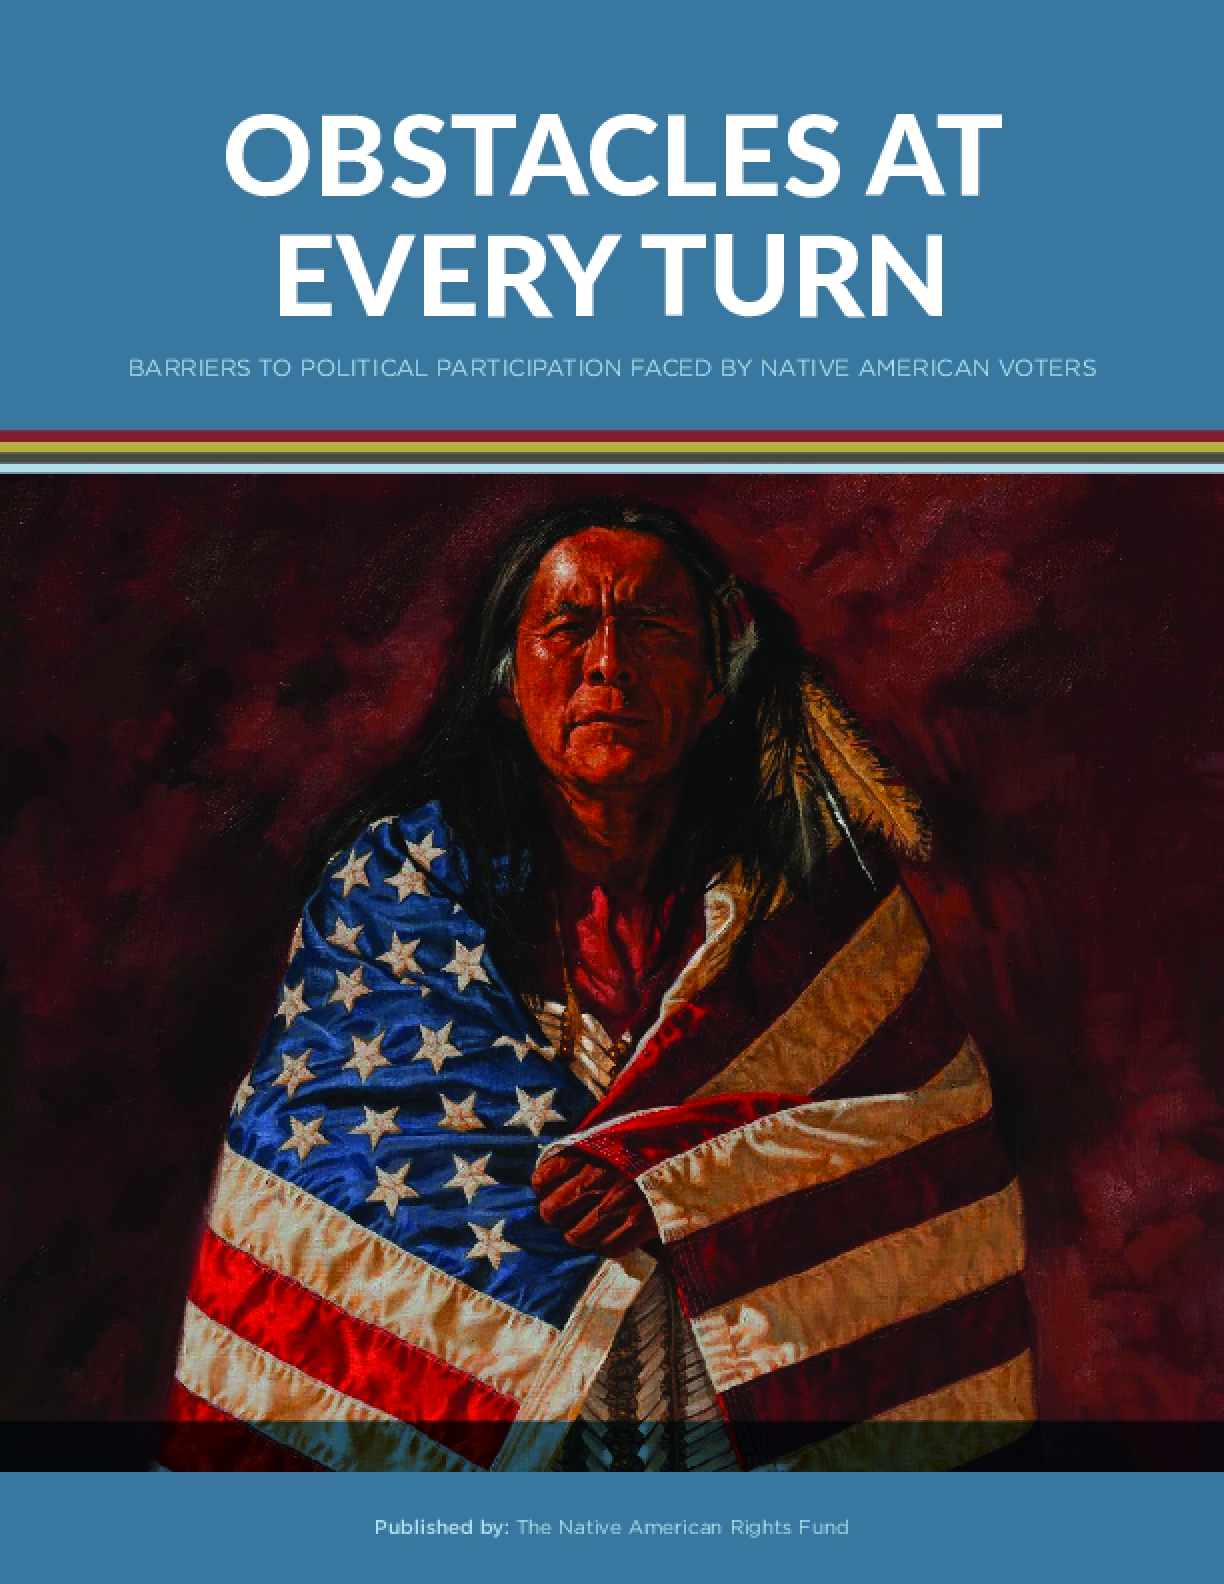 Obstacles at Every Turn: Barriers to Political Participation Faced by Native American Voters